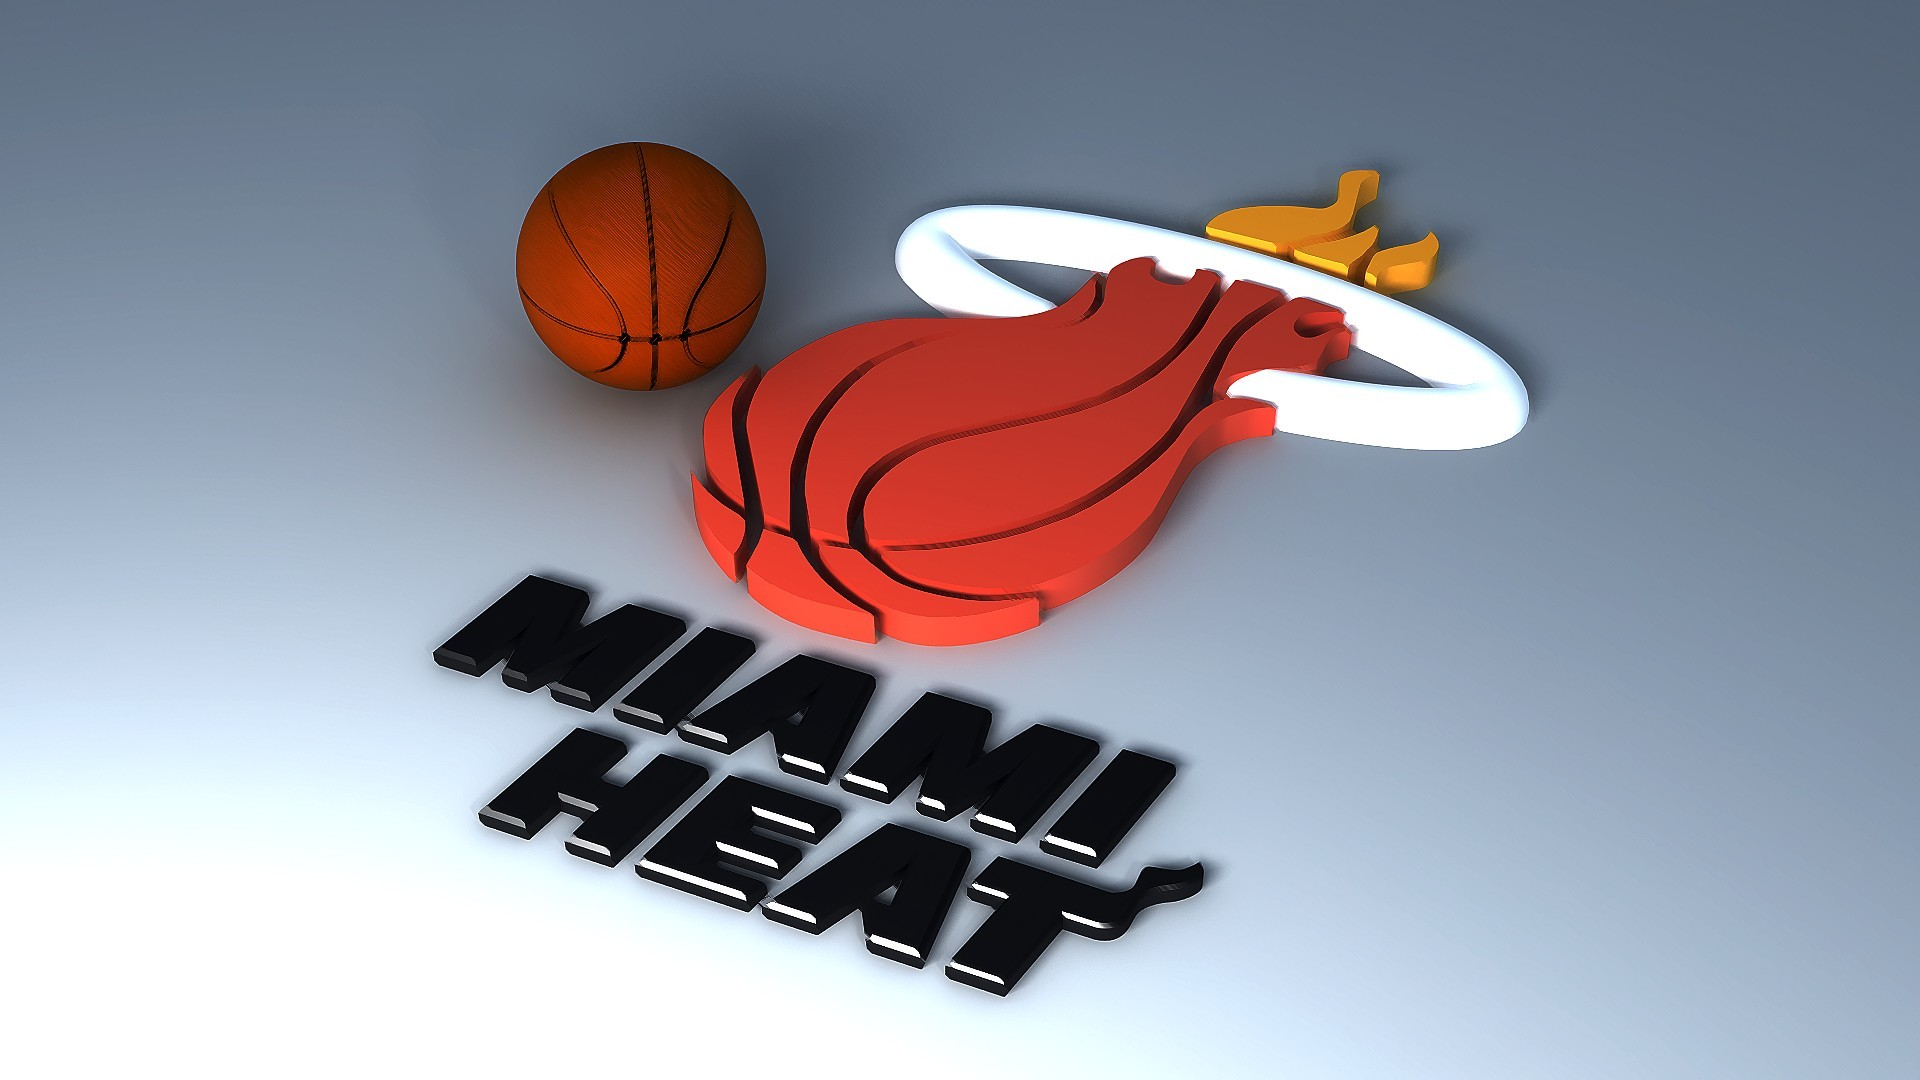 1920x1080 Miami Heat Desktop Wallpapers with high-resolution  pixel. You can  use this wallpaper